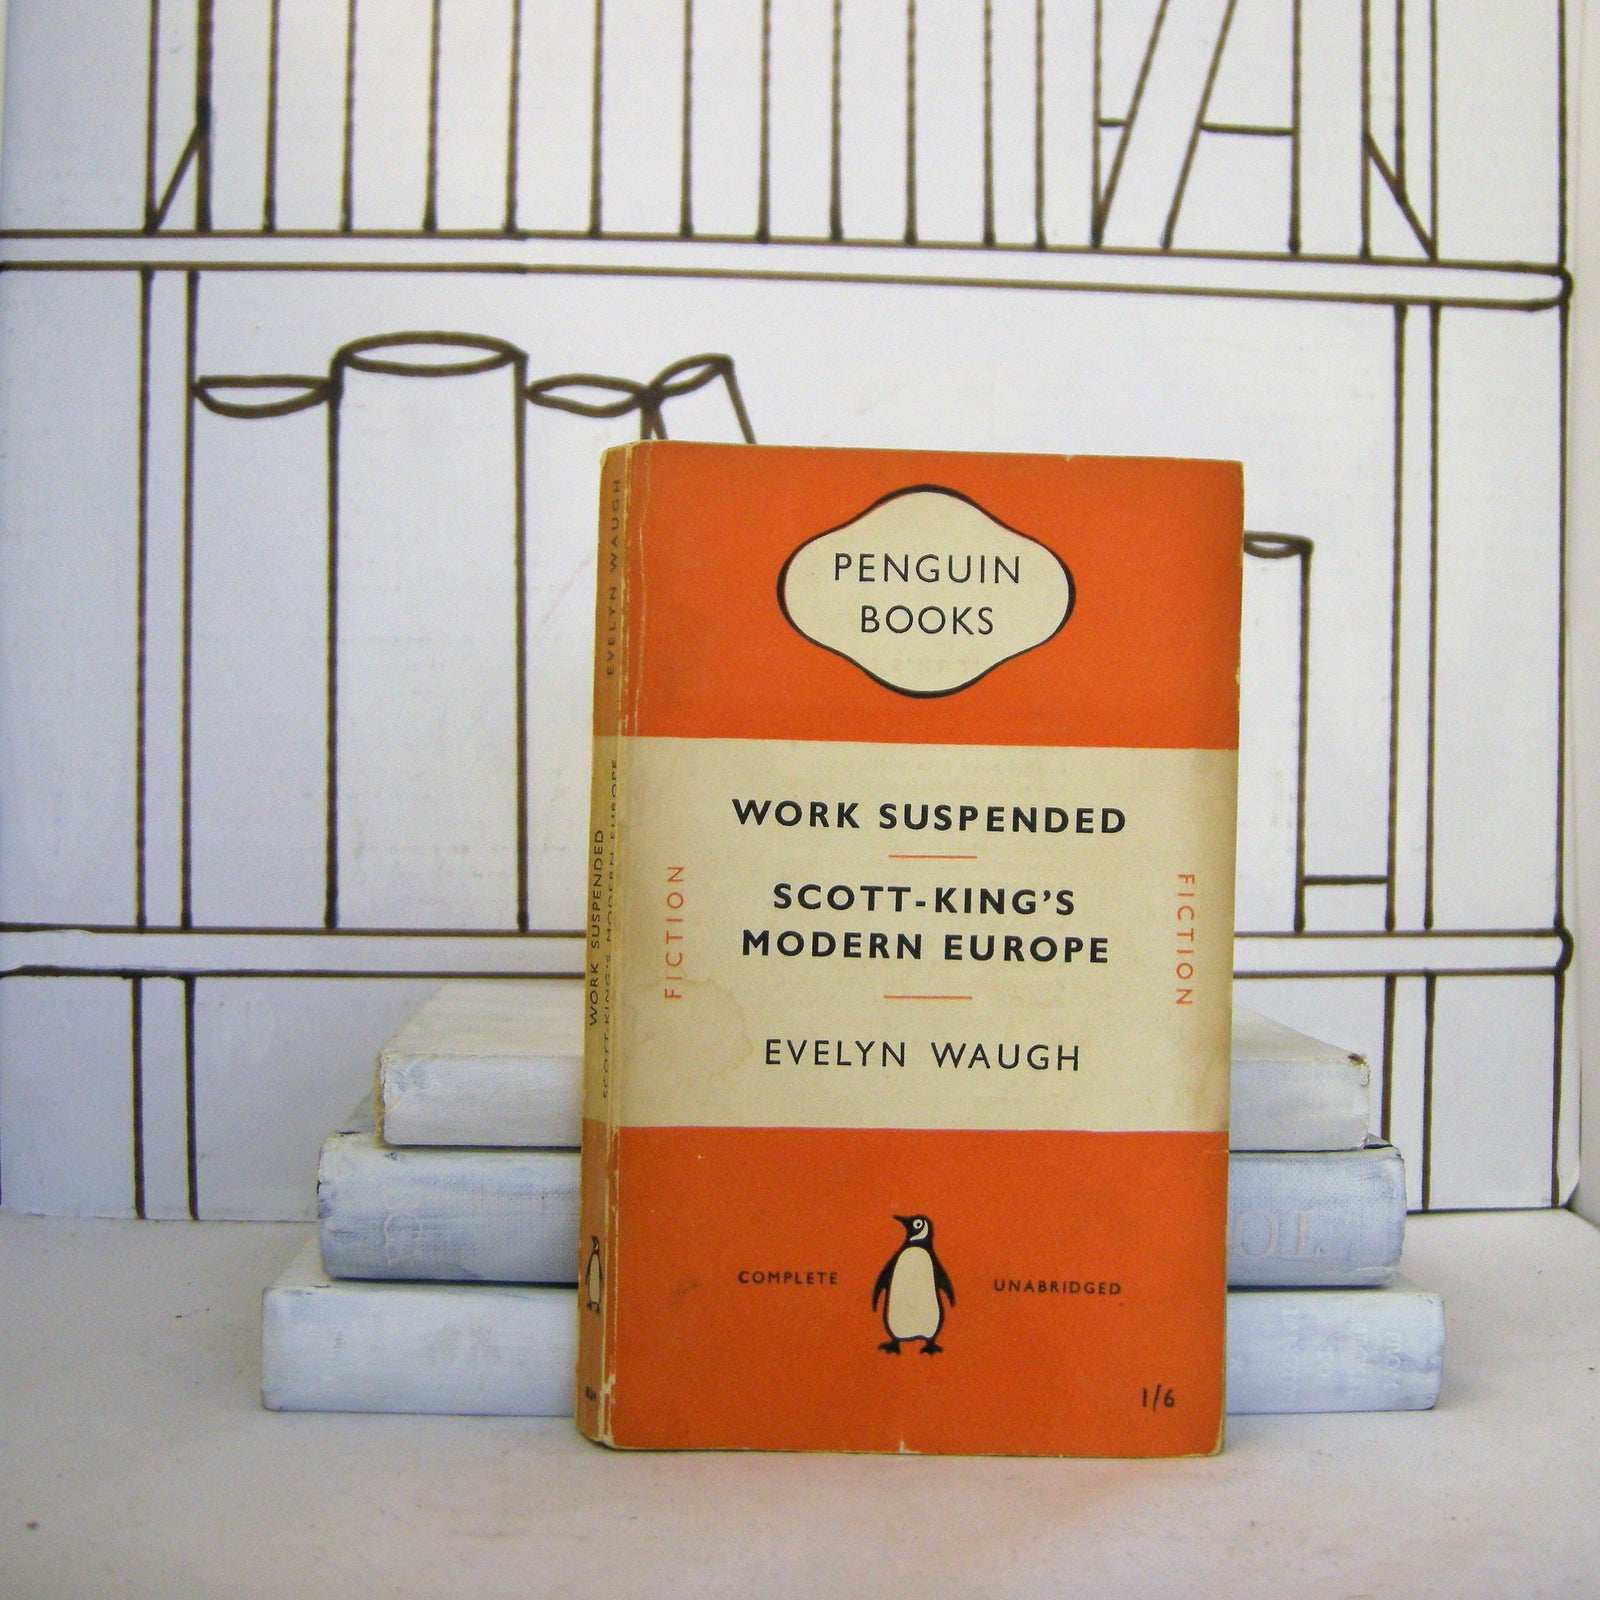 Book - Work Suspended & Scott-King's Modern Europe By Evelyn Waugh (Vintage, Penguin)